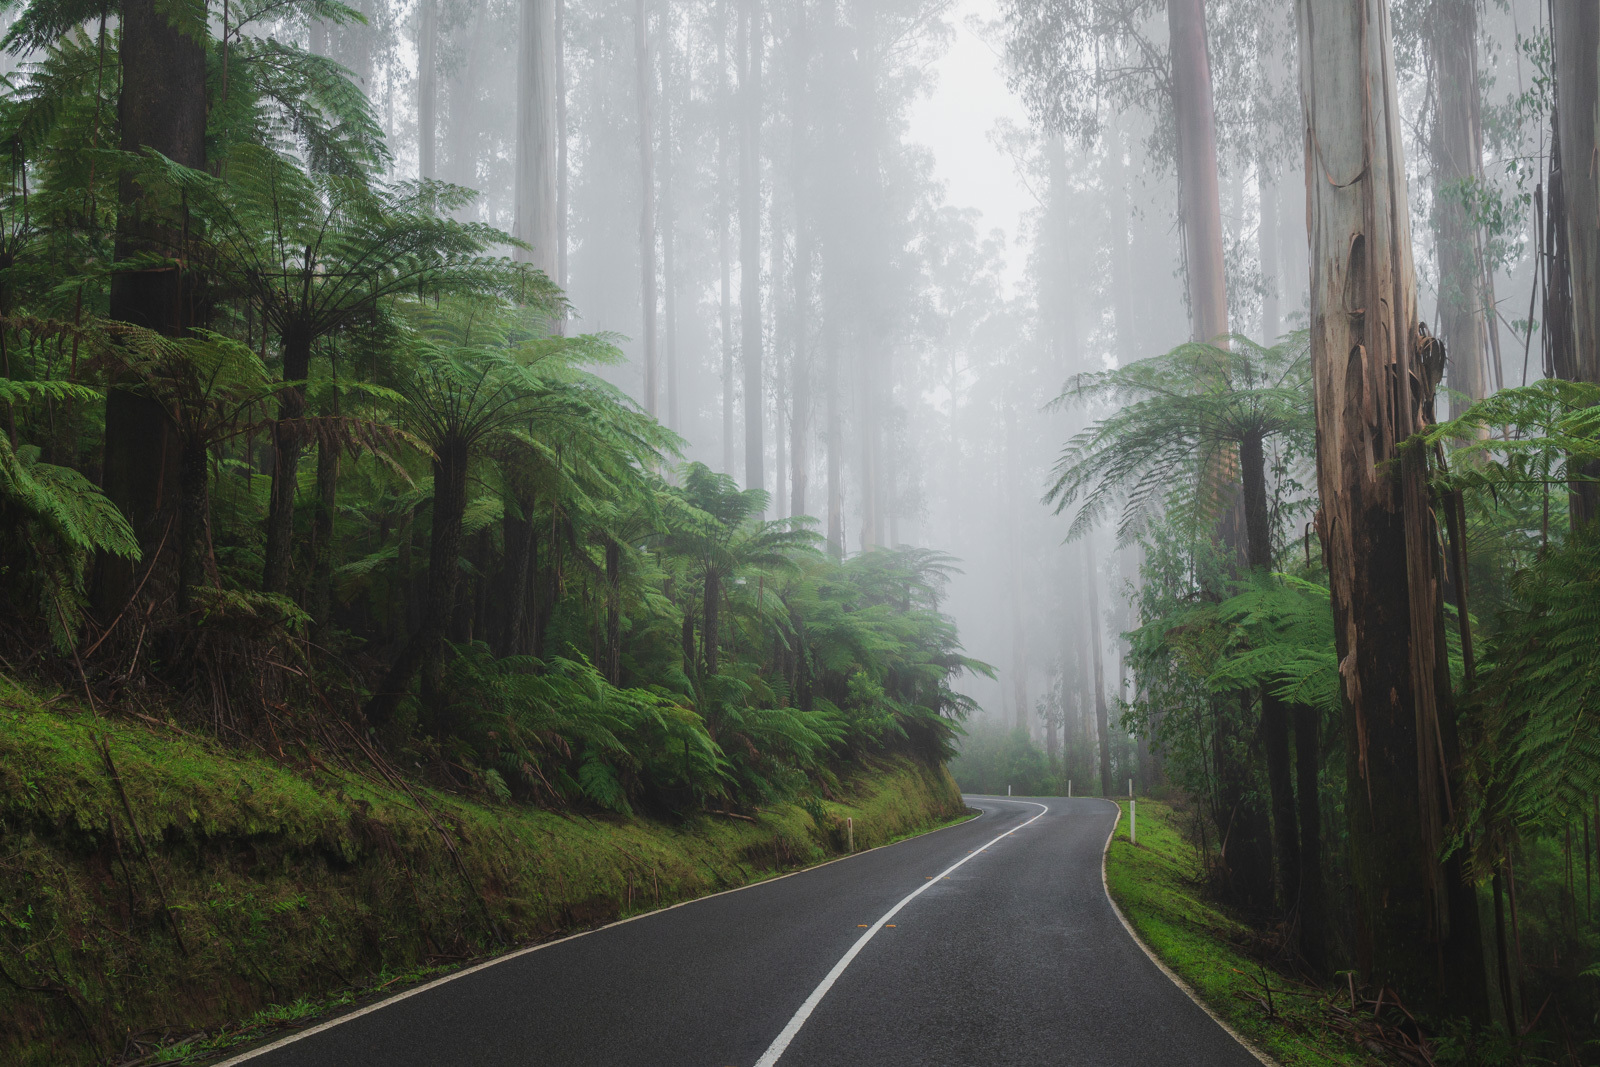 Road surrounded by trees in Warburton Victoria